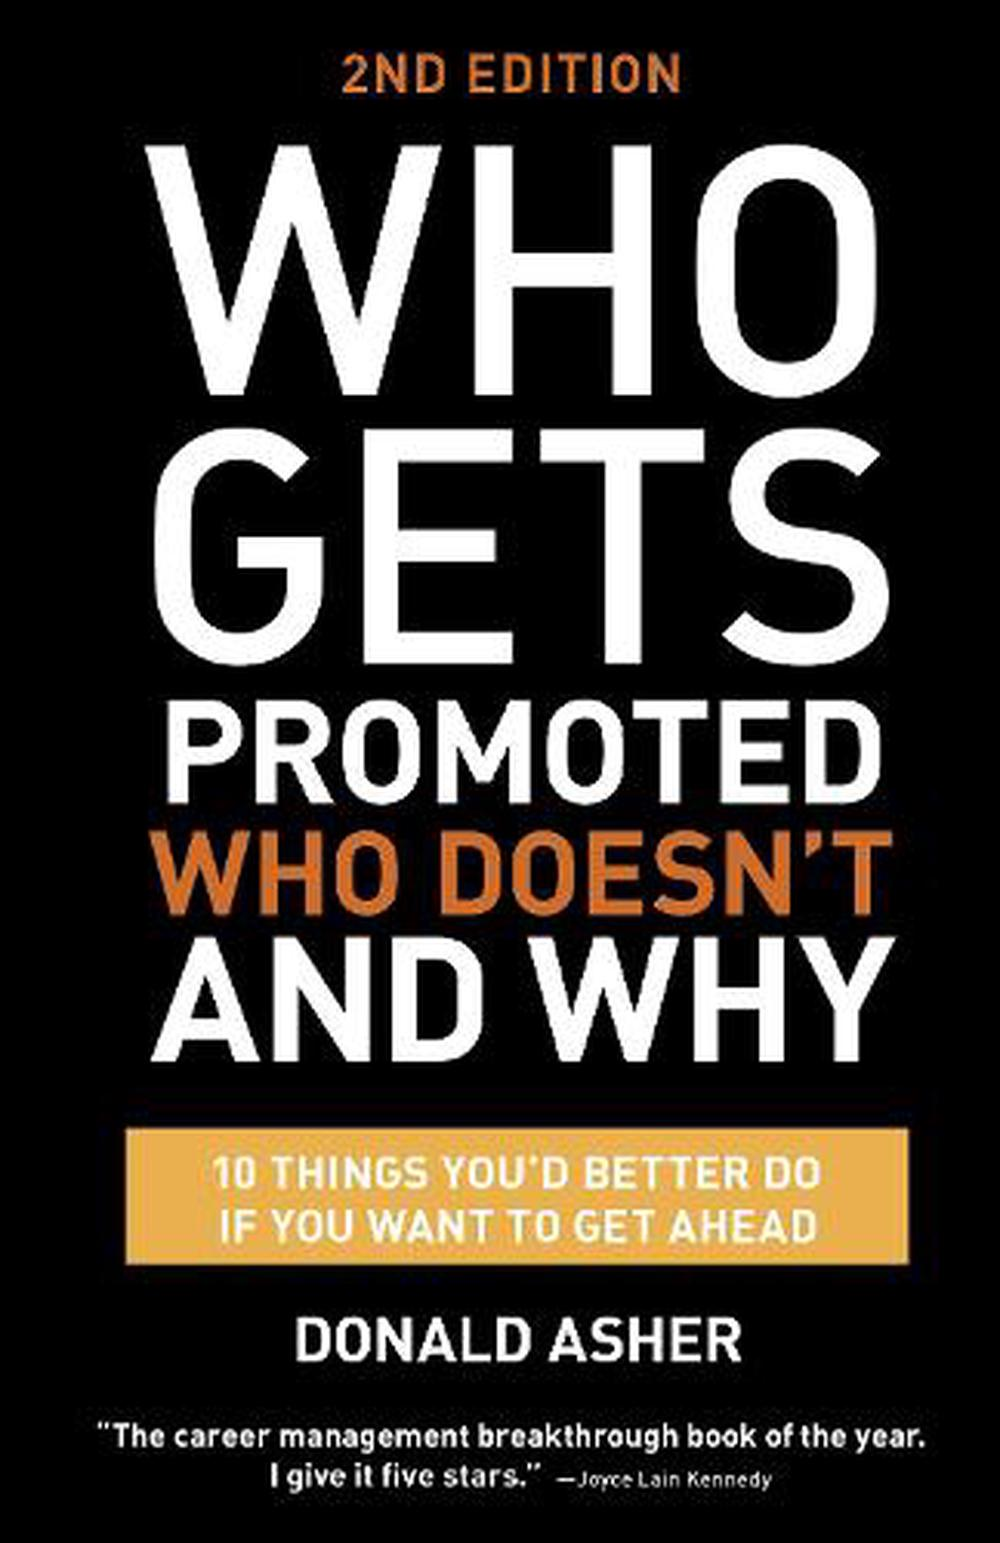 Who Gets Promoted, Who Doesn't, and Why: 12 Things You'd Better Do If You Want to Get Ahead